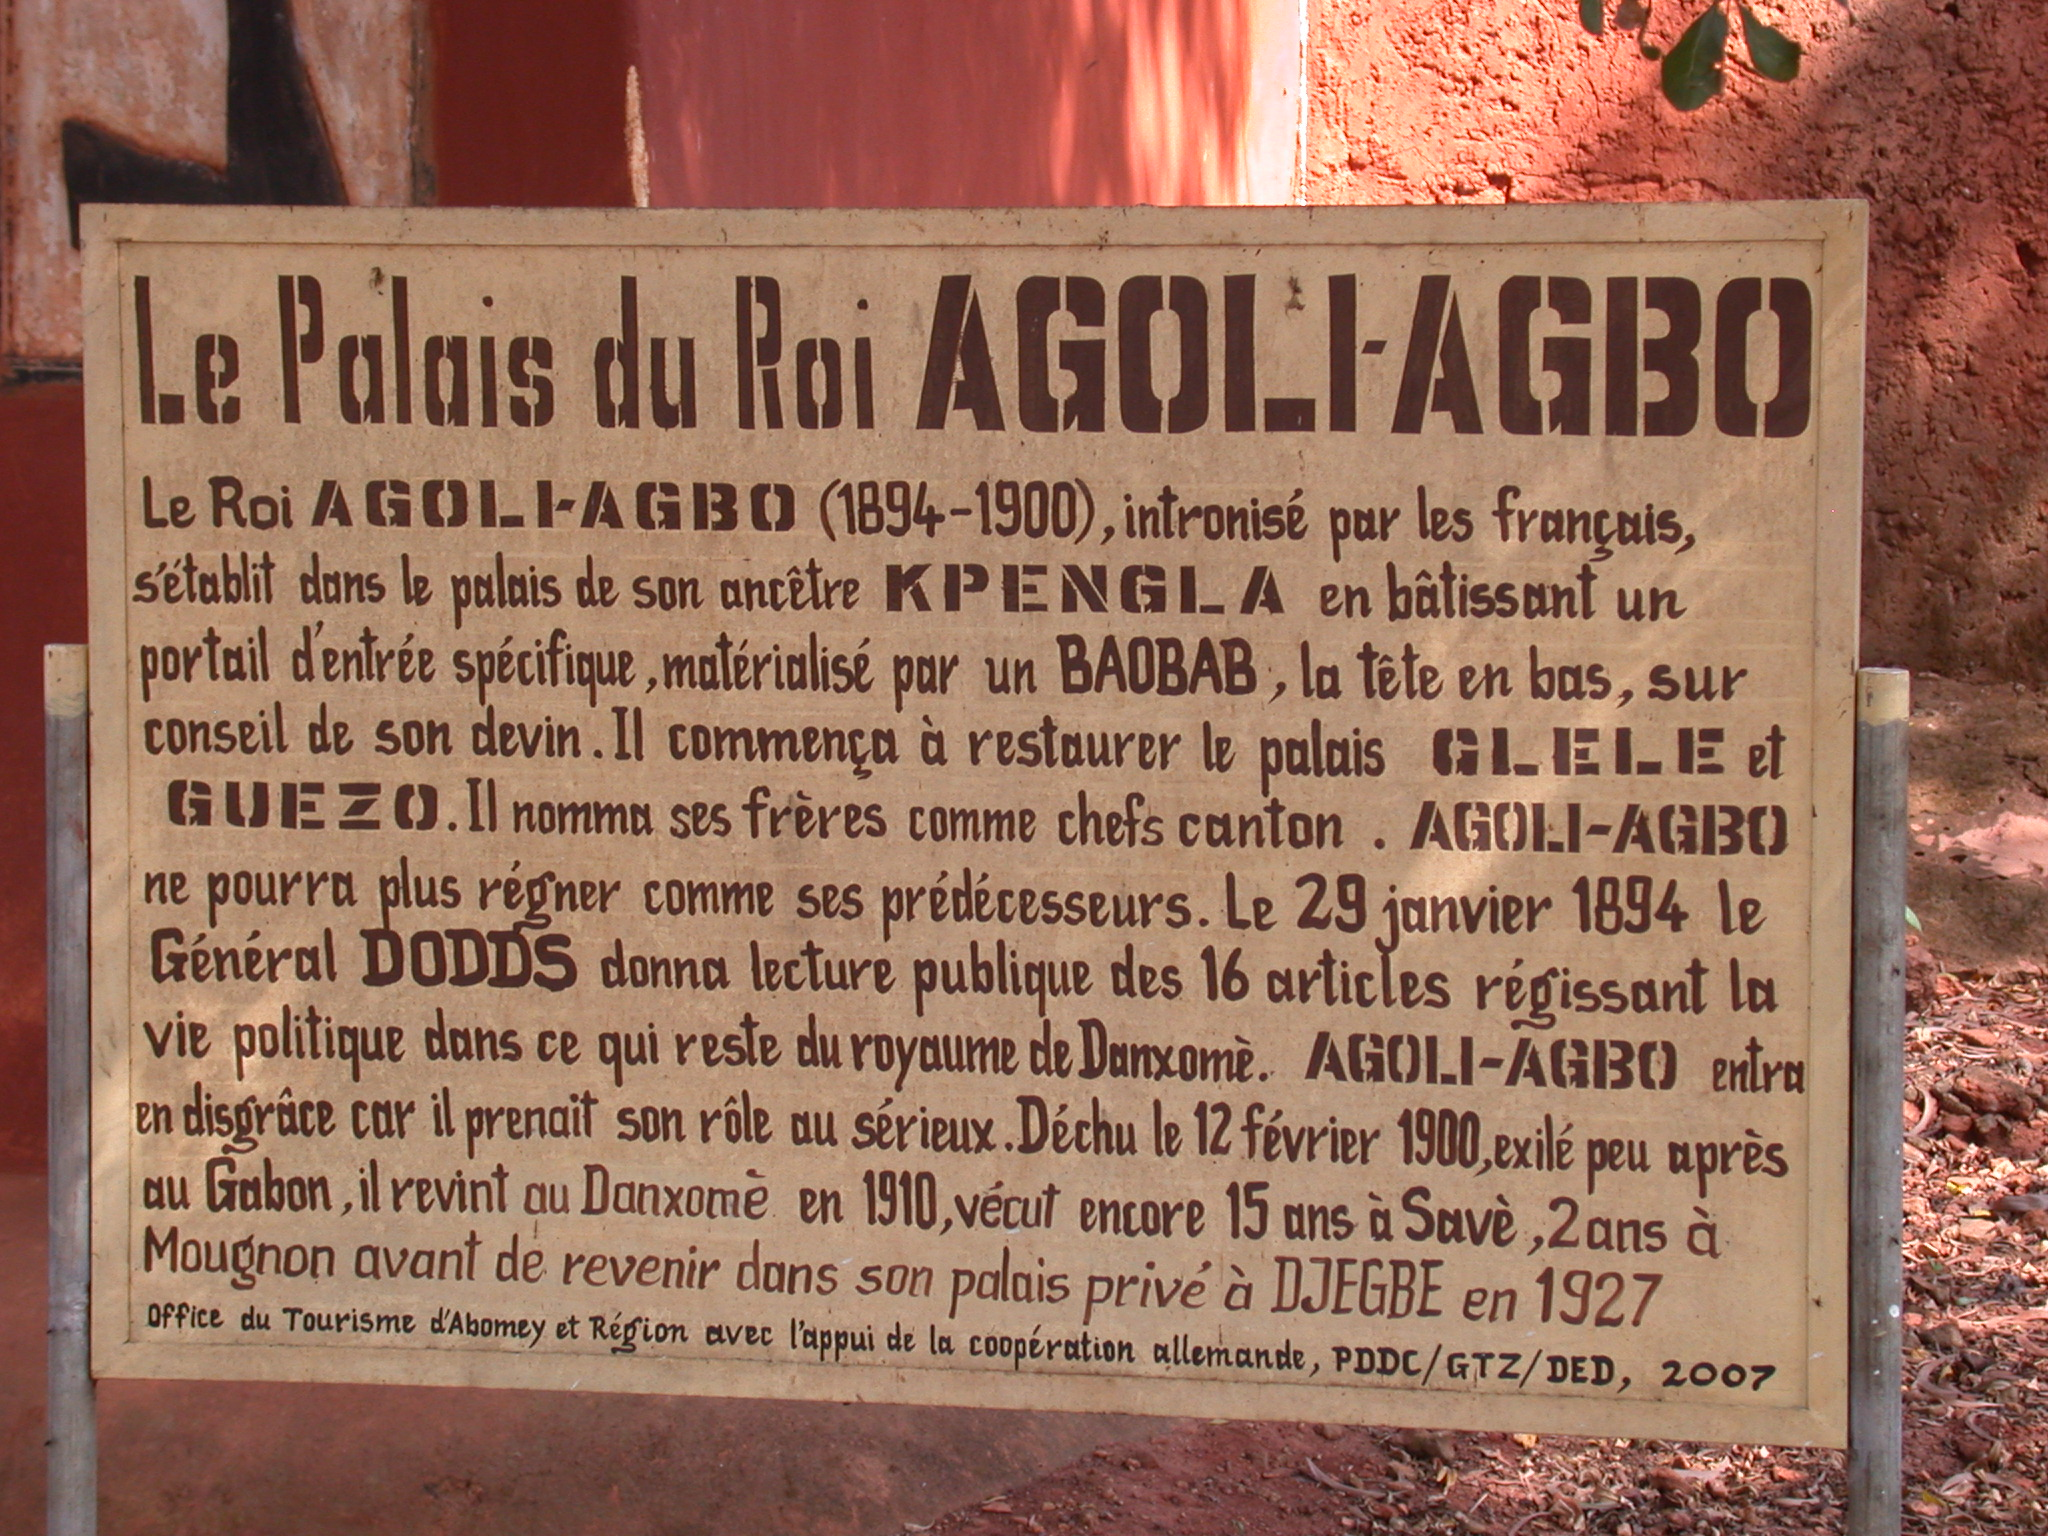 Sign for Palace of King Agoli-Agbo, Abomey, Benin